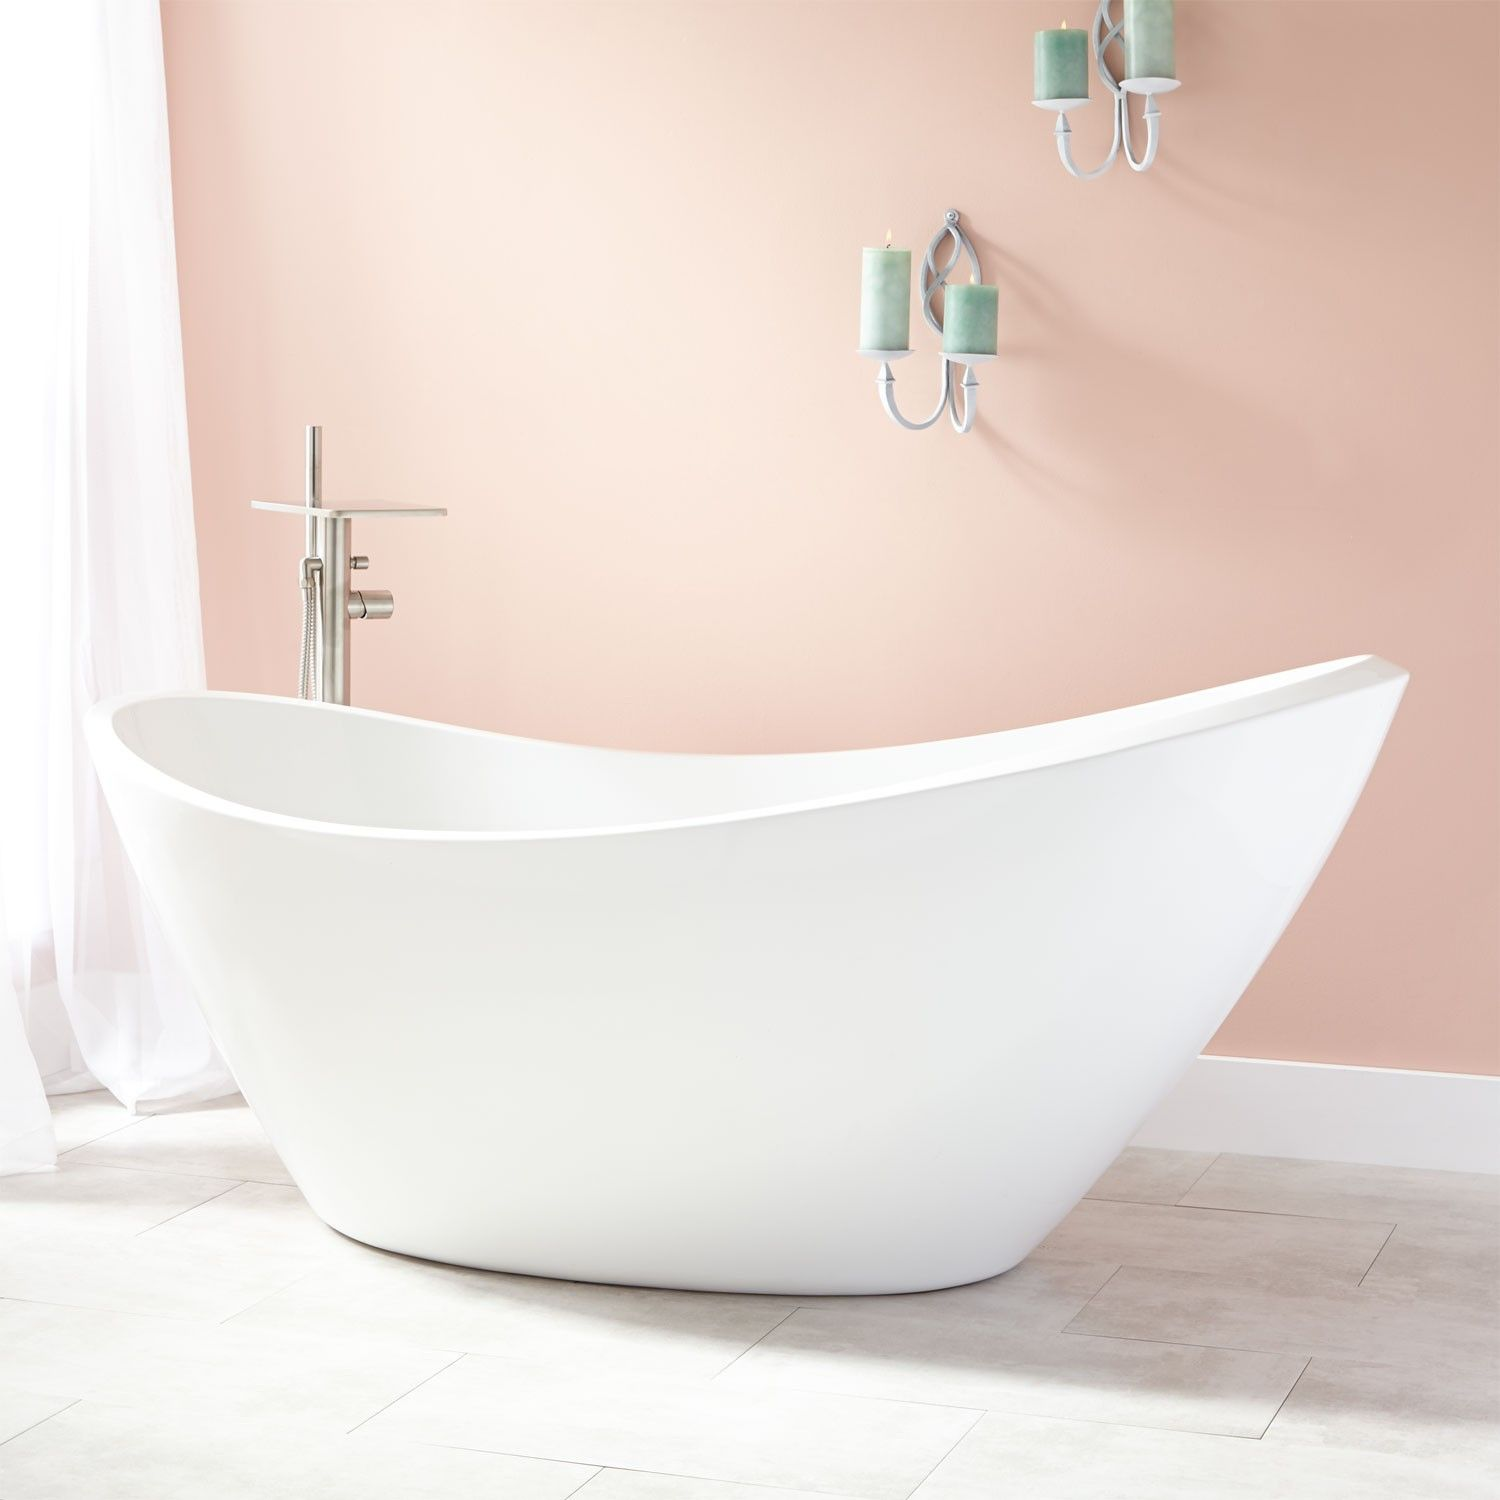 Urquhart Acrylic Freestanding Tub | Pinterest | Freestanding tub ...